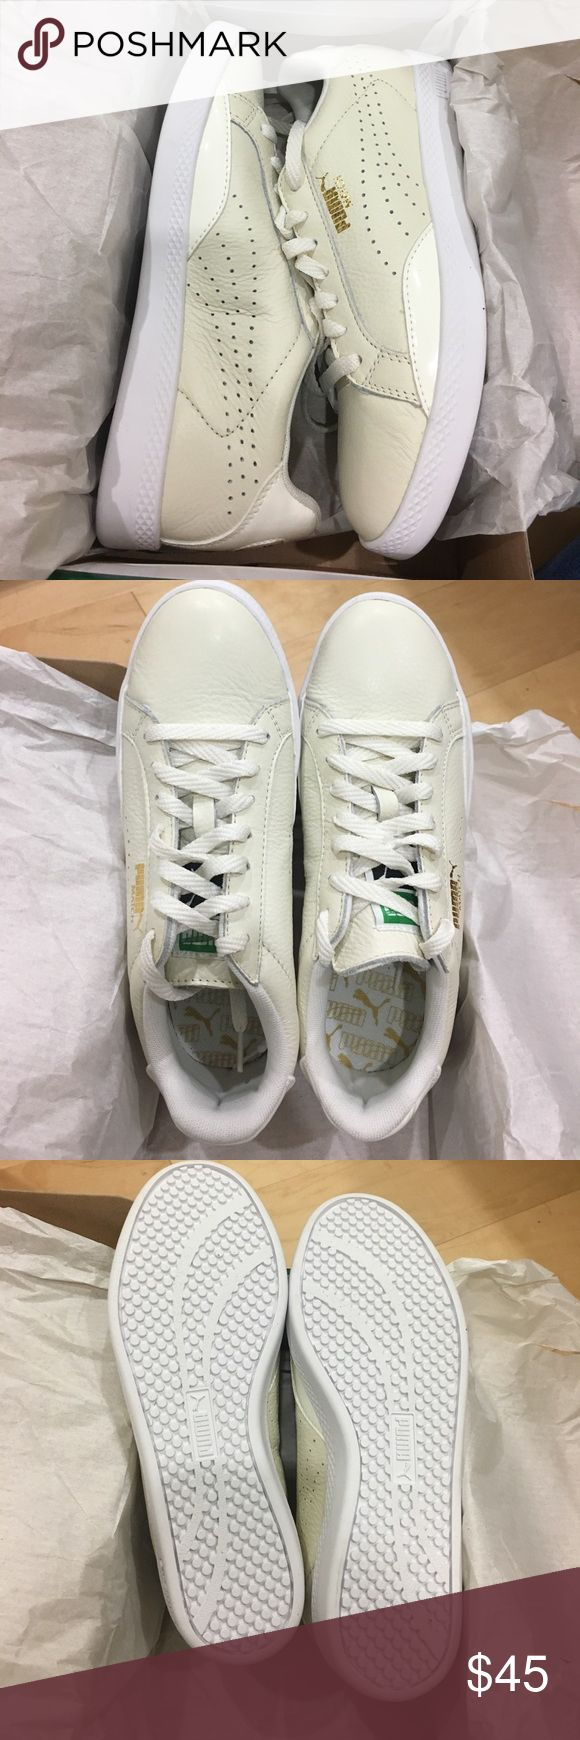 """Brand New PUMA Match Lo BW Tennis Shoes Brand new Puma sneakers in """"marshmellow white"""". In original box Puma Shoes Sneakers"""